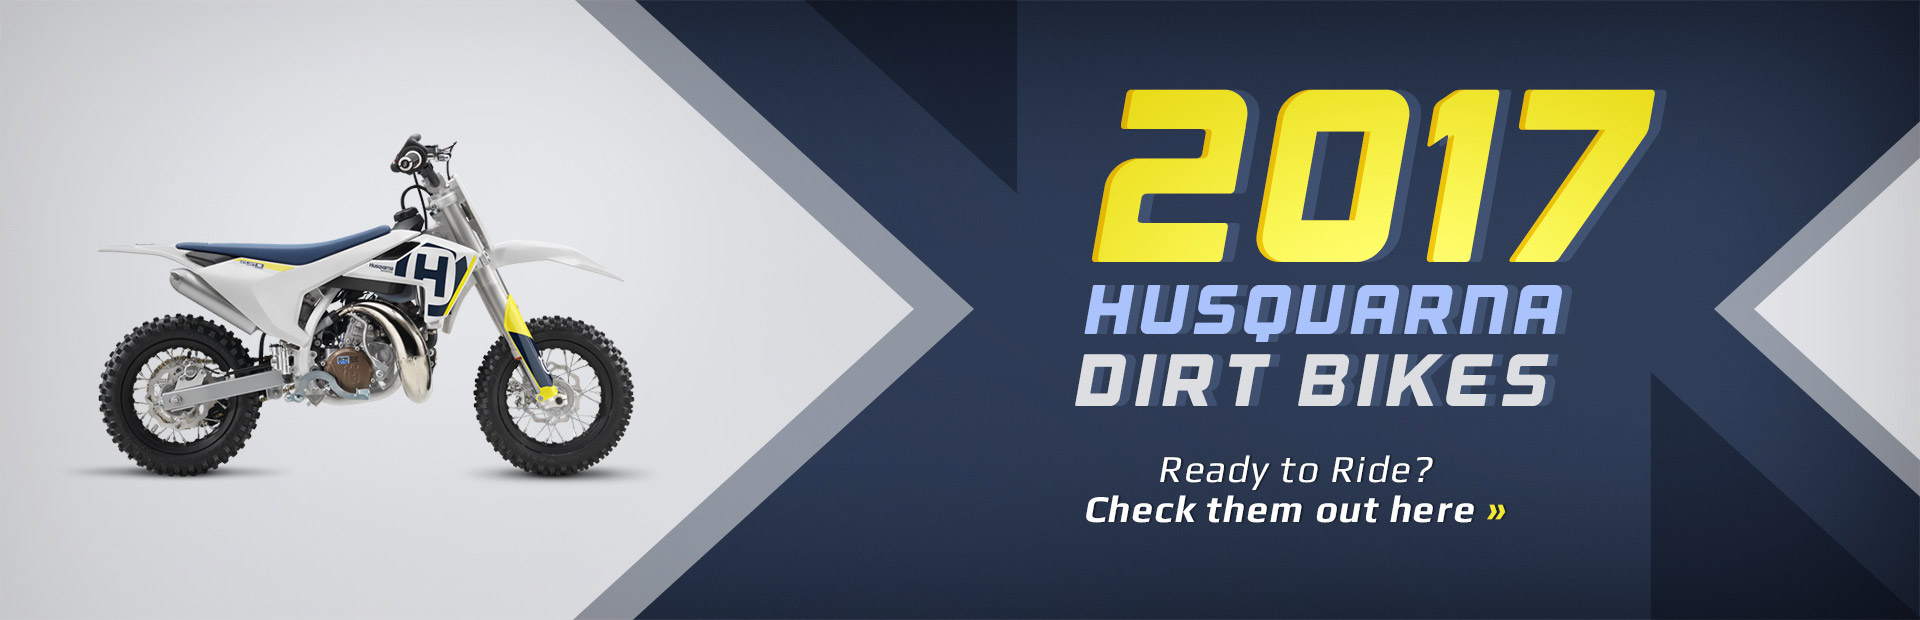 2017 Husqvarna Dirt Bikes: Click here to view the models.